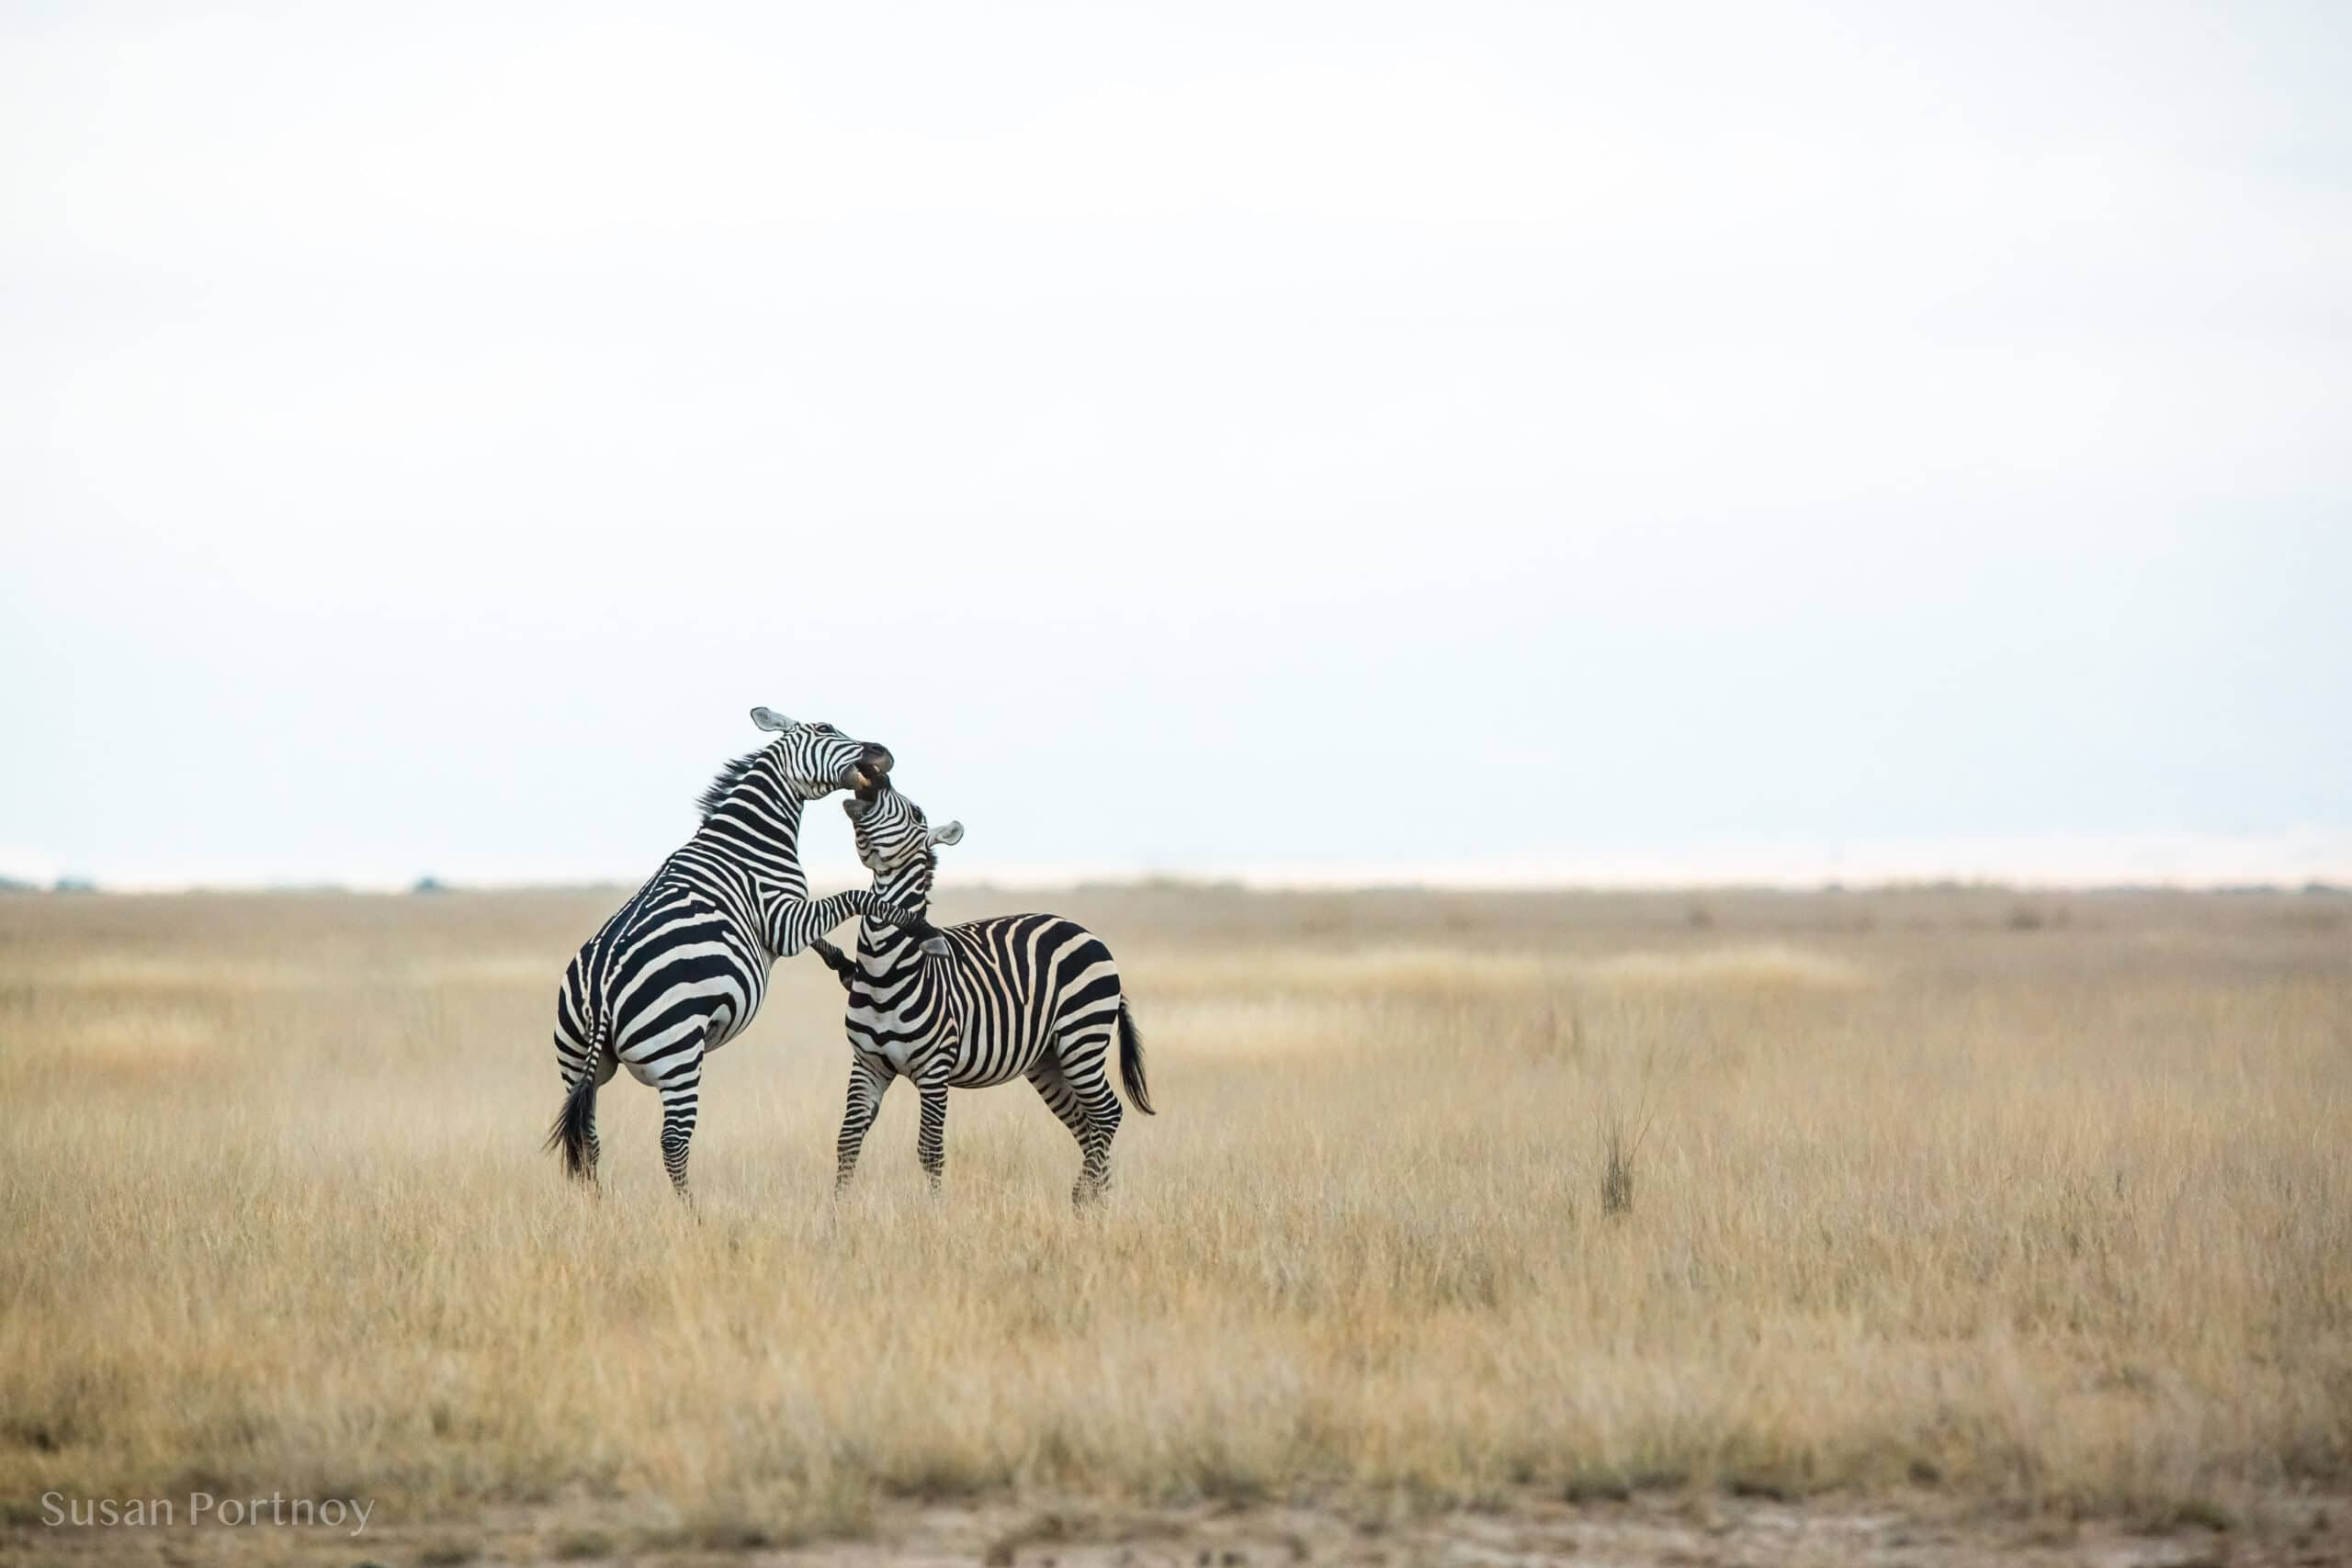 Two male zebras spar for dominance in Amboseli, Kenya